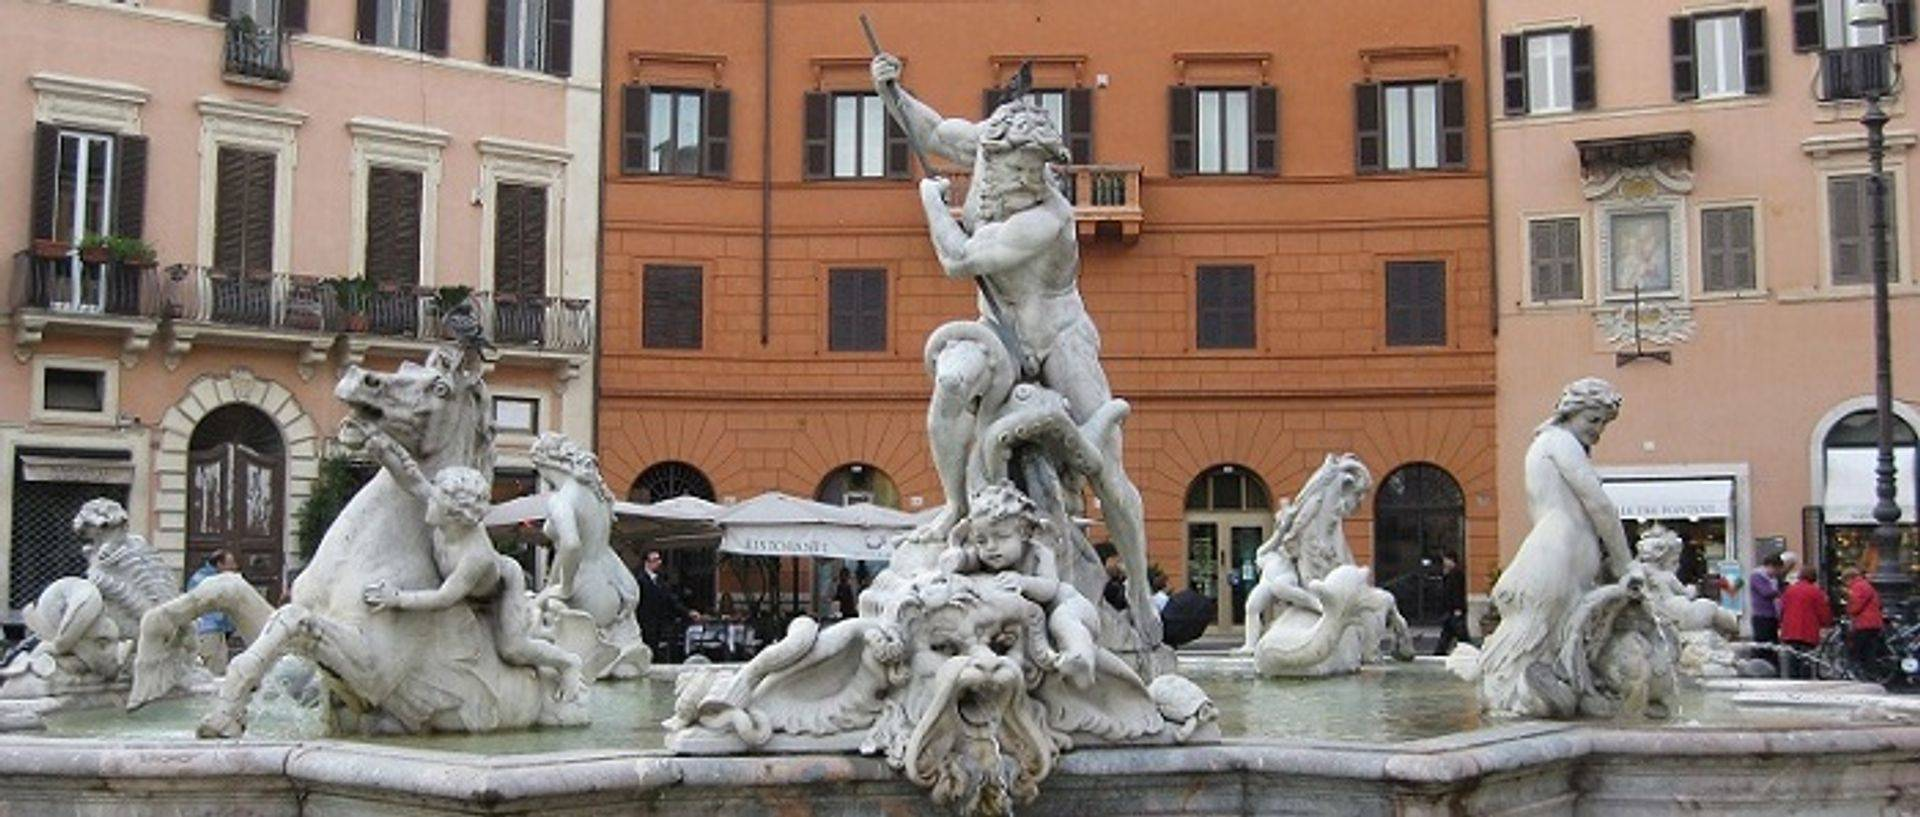 "womens travel.jpg alt= womens travel, neptune fountain, rome , italy "">"